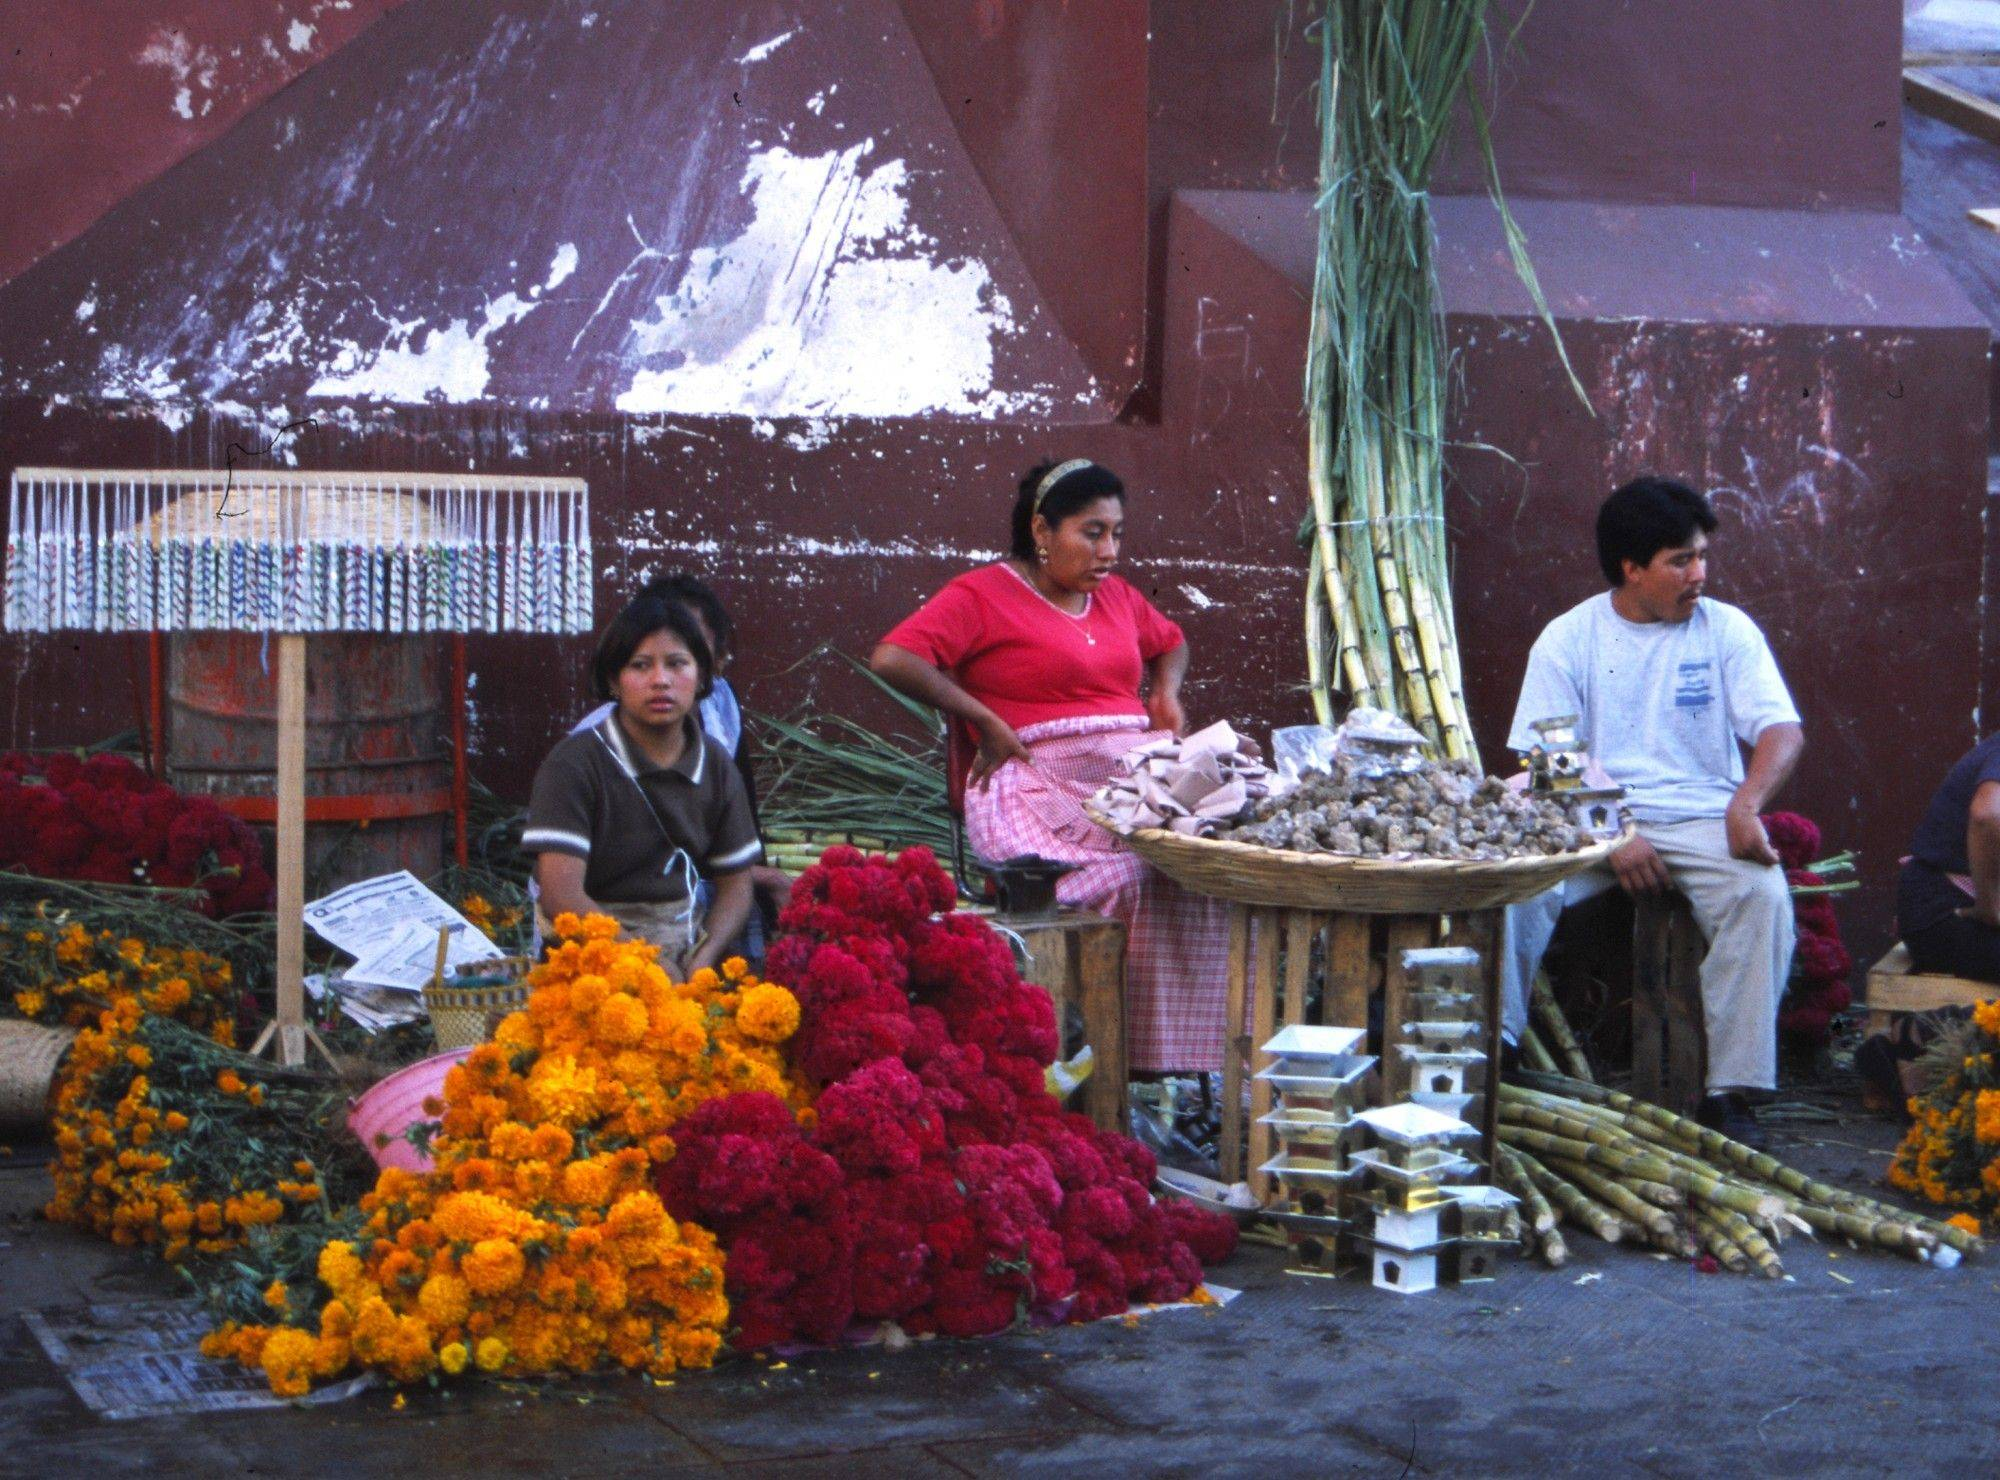 For days before a Mexican holiday known as El Dia De Los Muertos  the Day of the Dead  vendors sell marigolds, sugarcane, candles and baskets heaped with pre-Columbian tree resin incense known as copal.